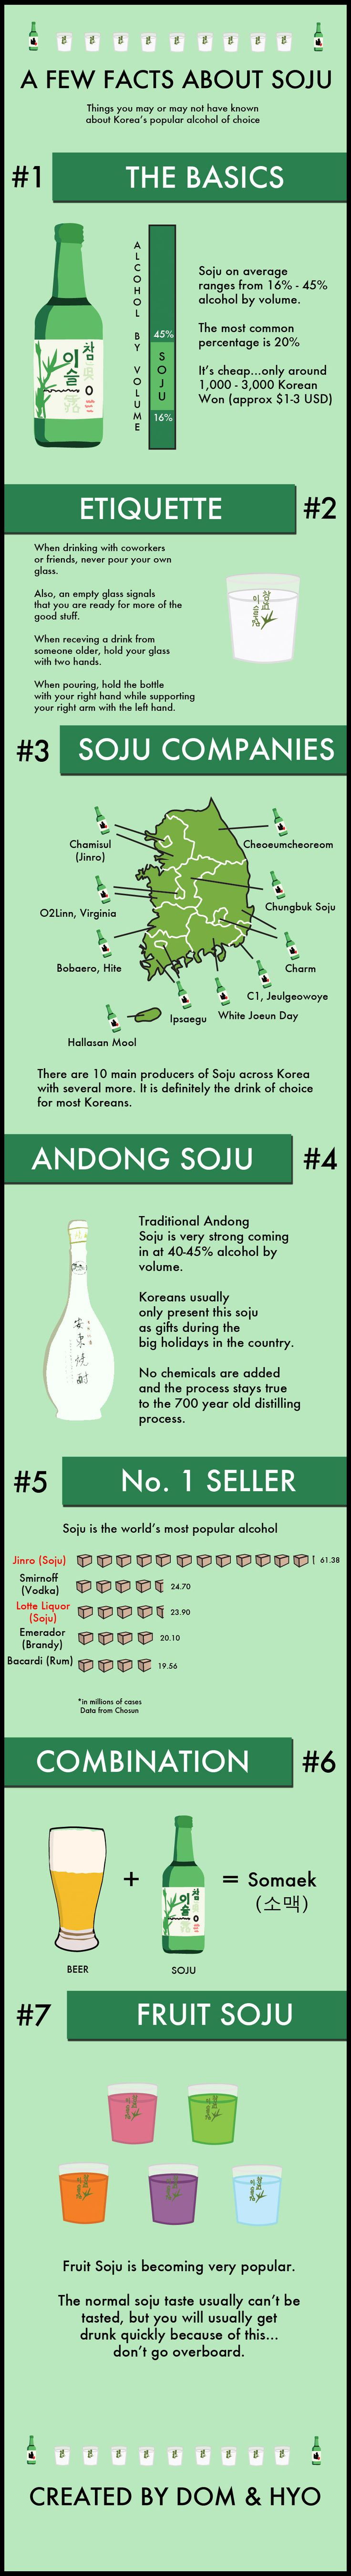 Facts about soju